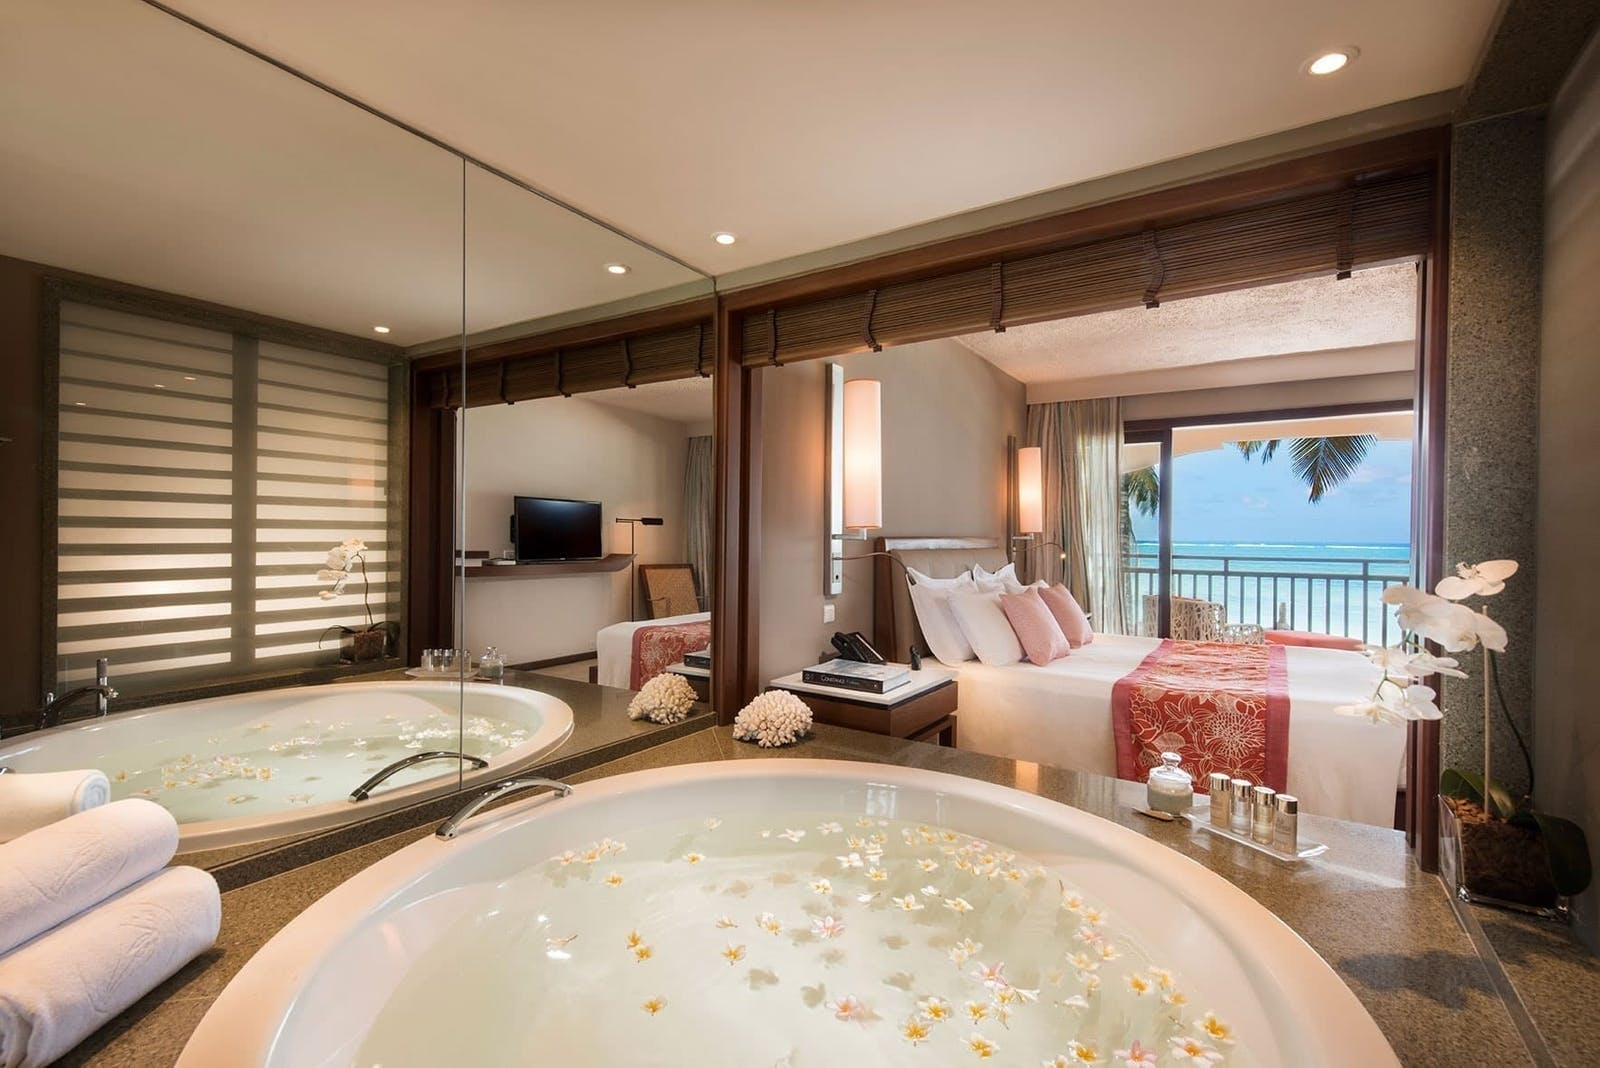 Deluxe Suite at Constance Belle Mare Plage, Mauritius